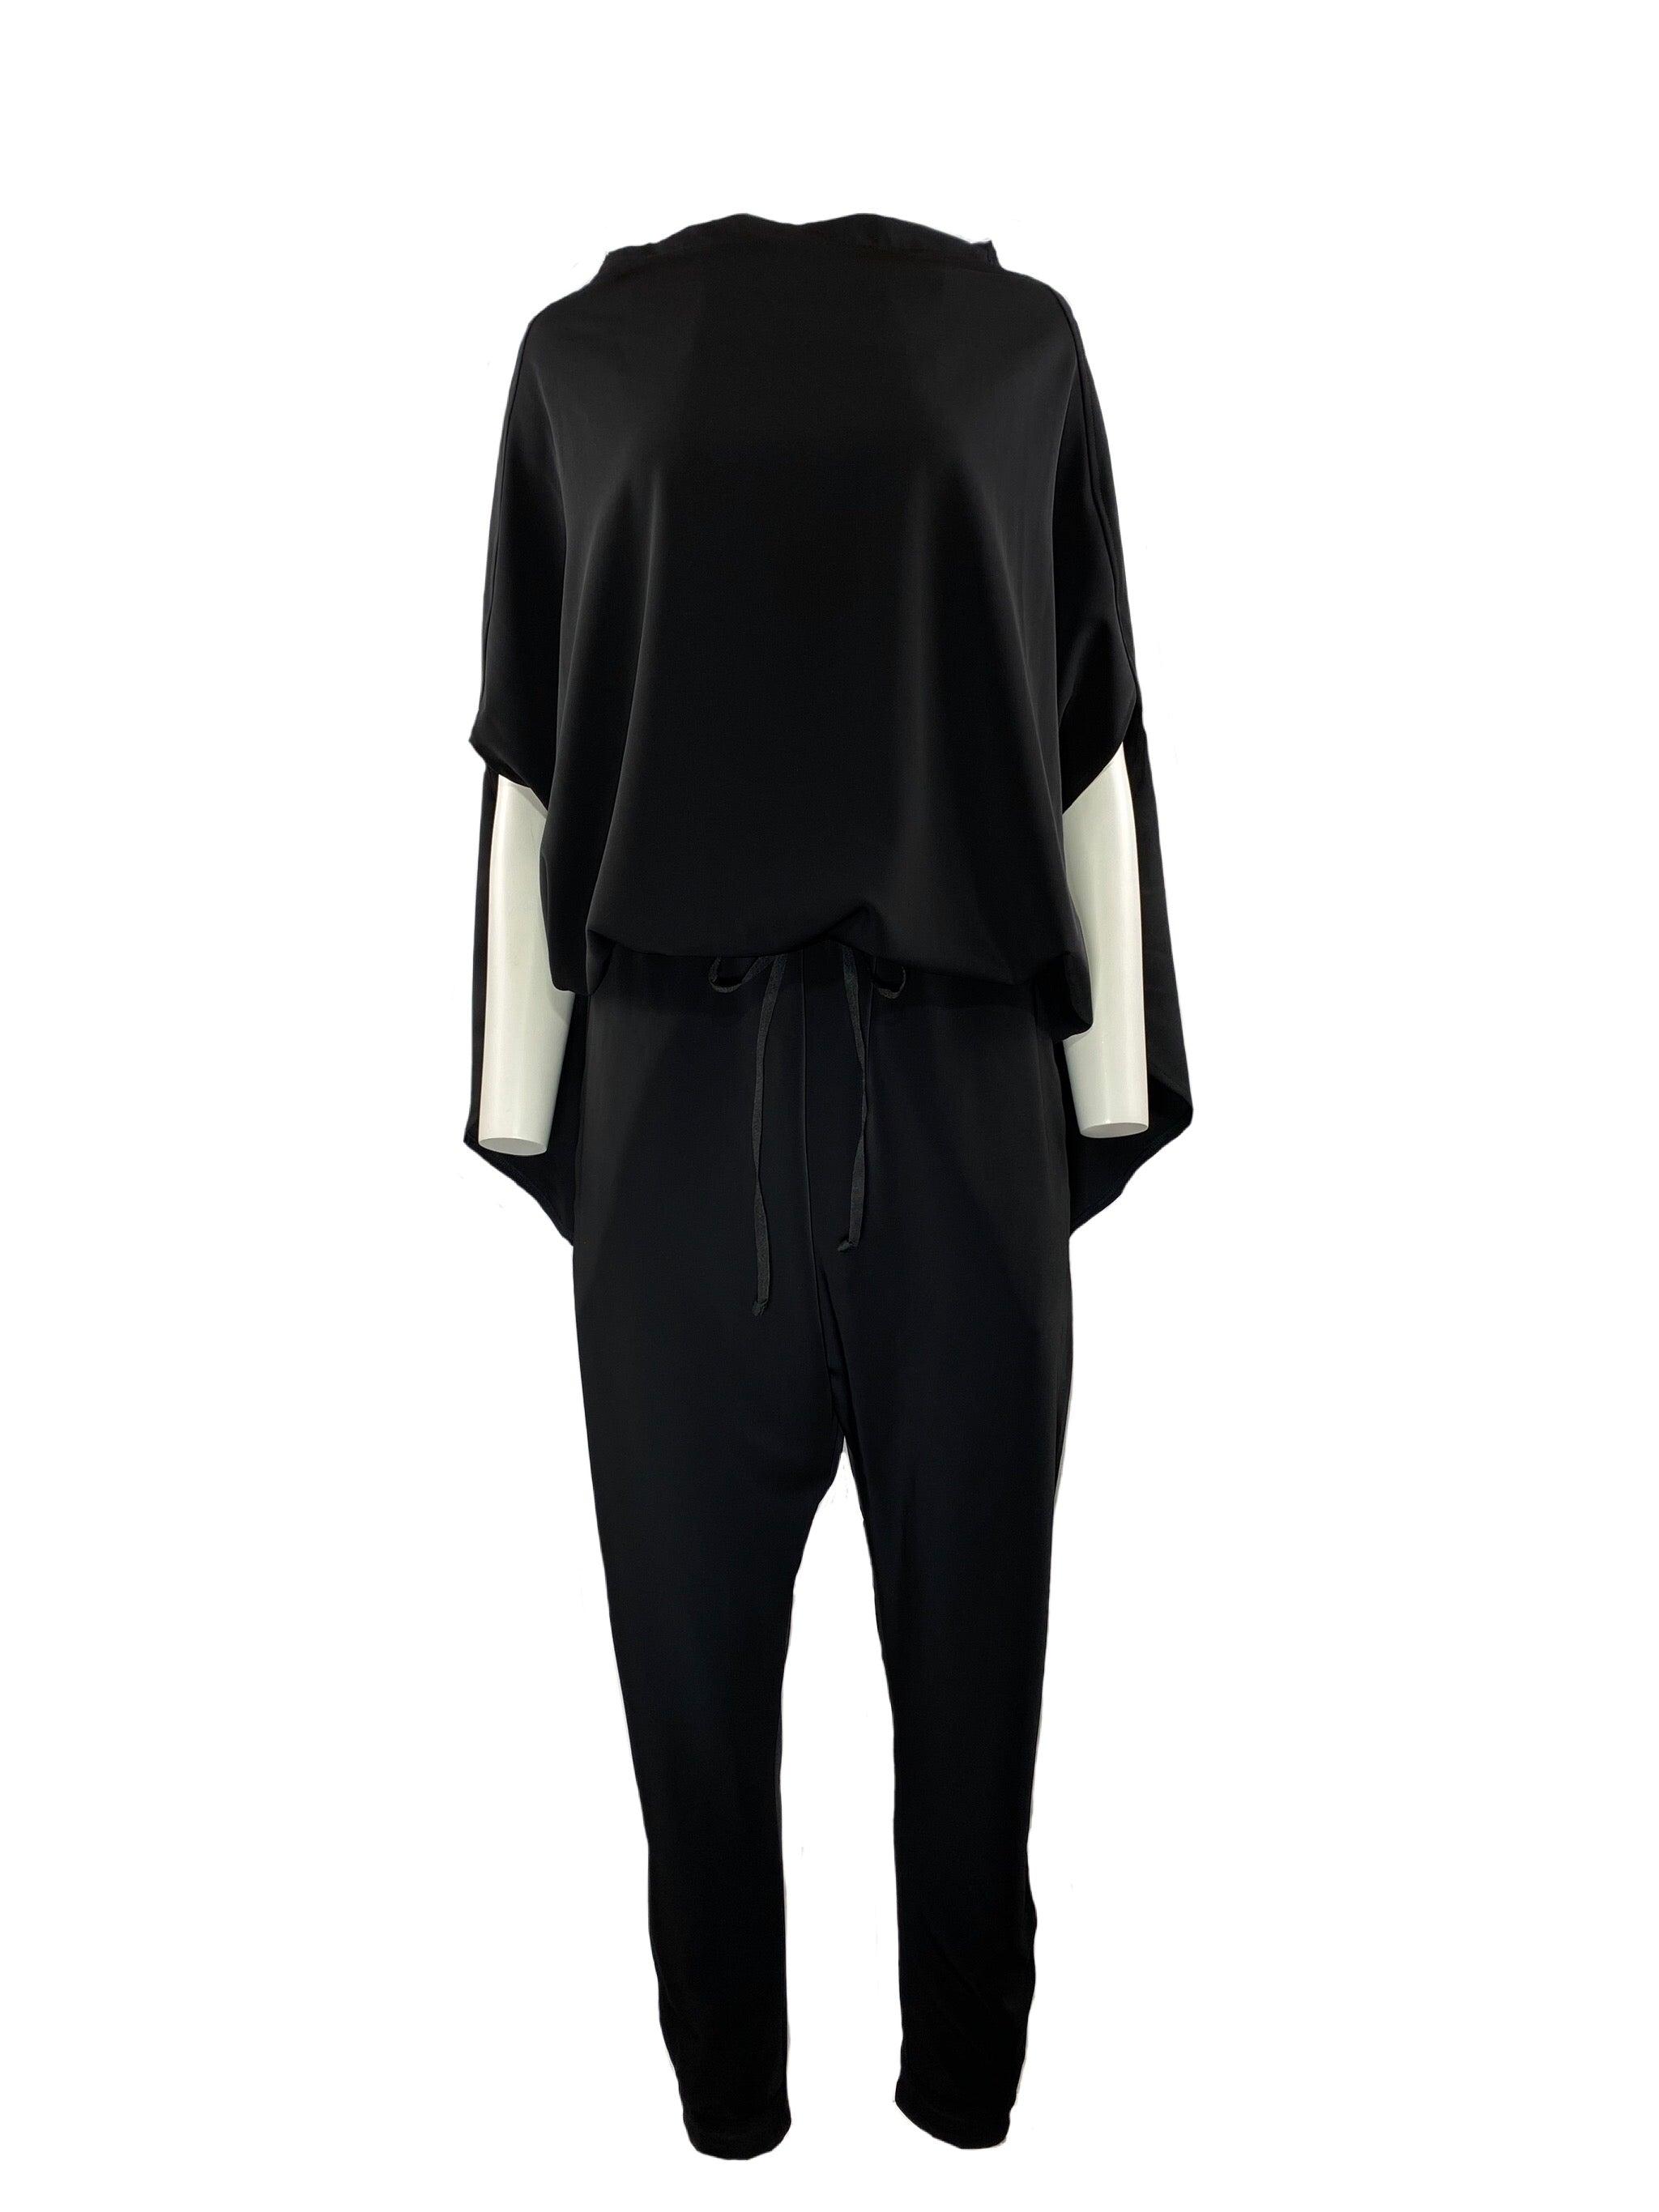 LUNA JUMP-SUITS / STRETCH CA		 		 		 - C3 (4694584262735)